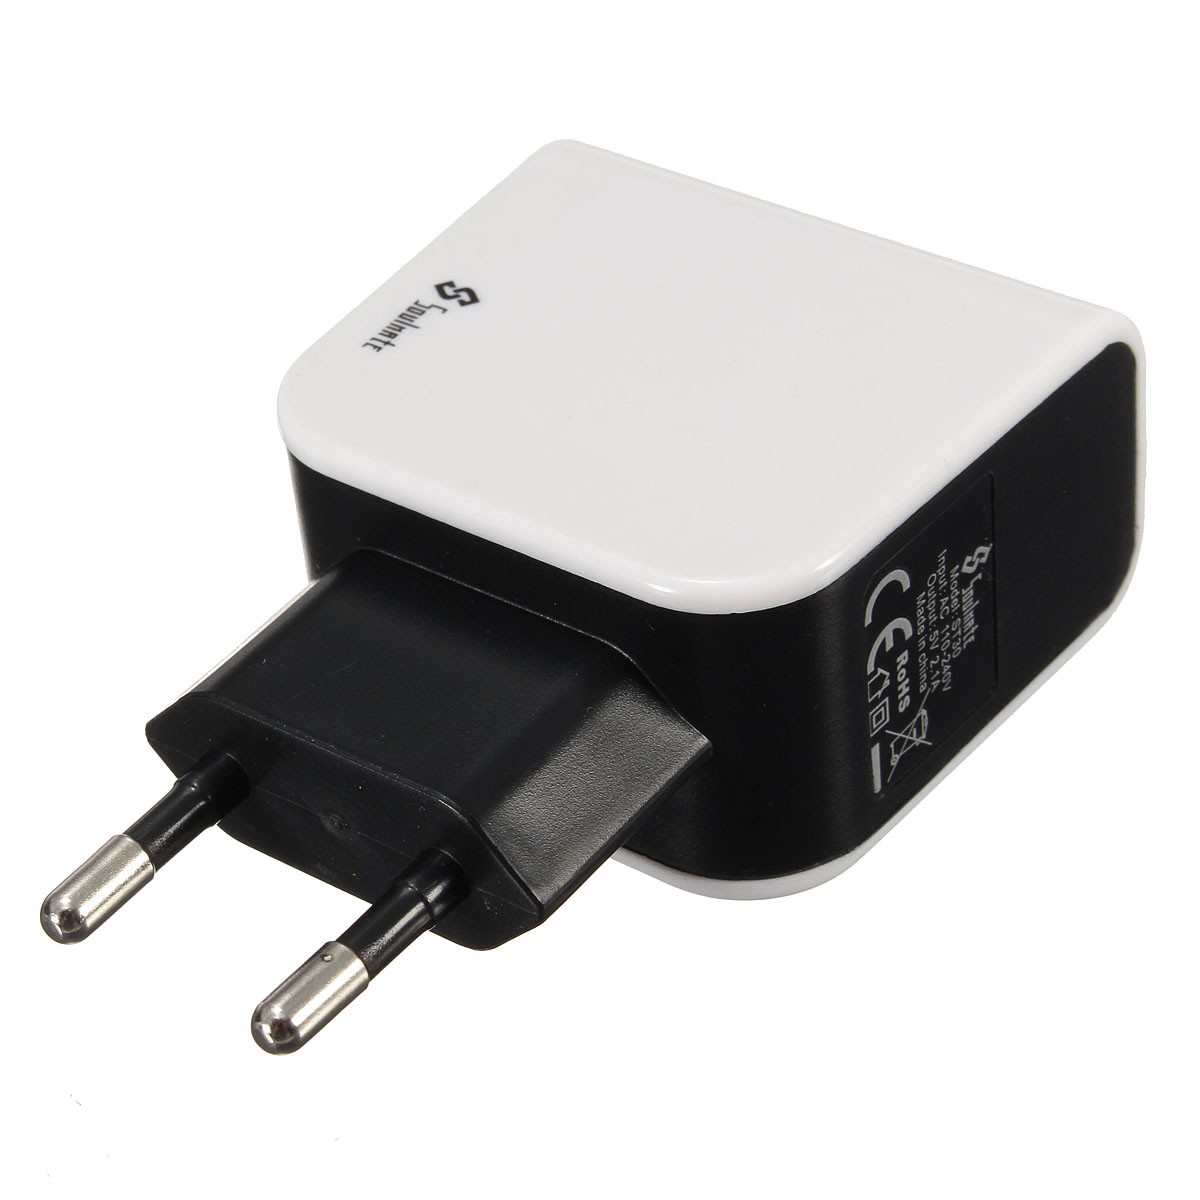 Soulmate ST30 EU Dual Port Micro USB Charger USB Adapter Portable Universal Power Adapter 5V 2.1A(China (Mainland))